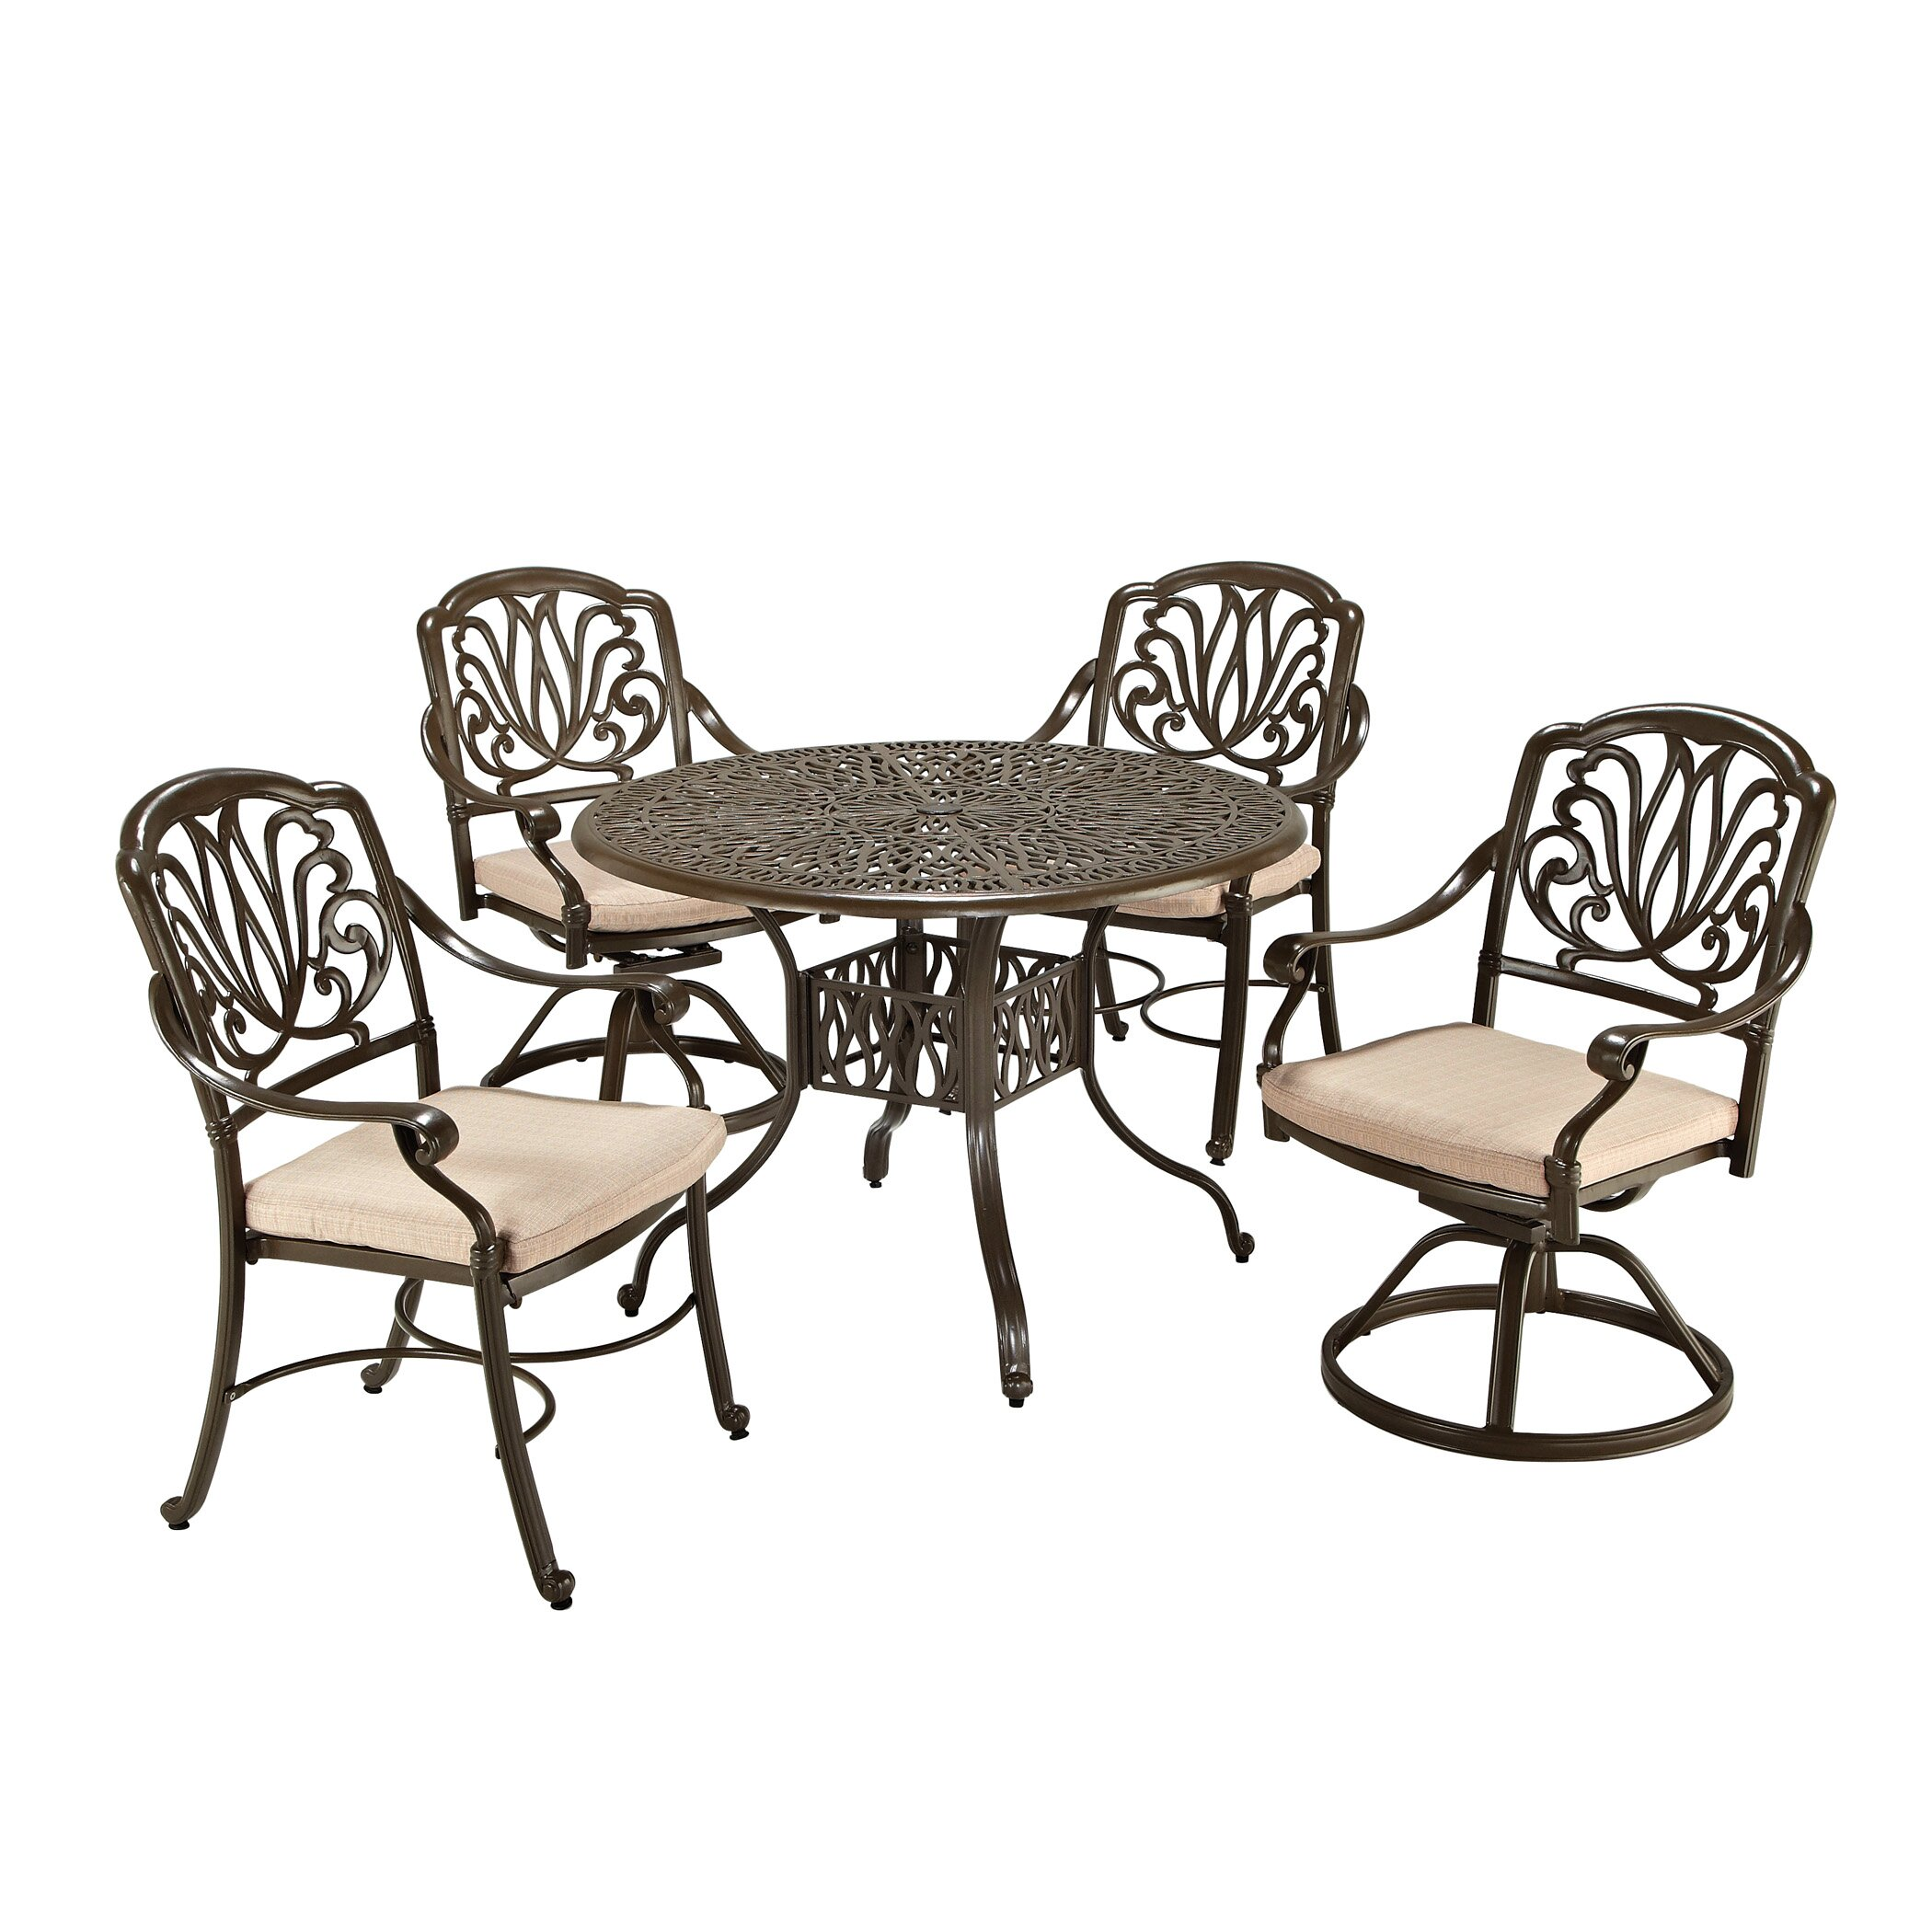 Very Impressive portraiture of One Allium Way Regent 5 Piece Dining Set with Cushions & Reviews  with #372C21 color and 2100x2100 pixels